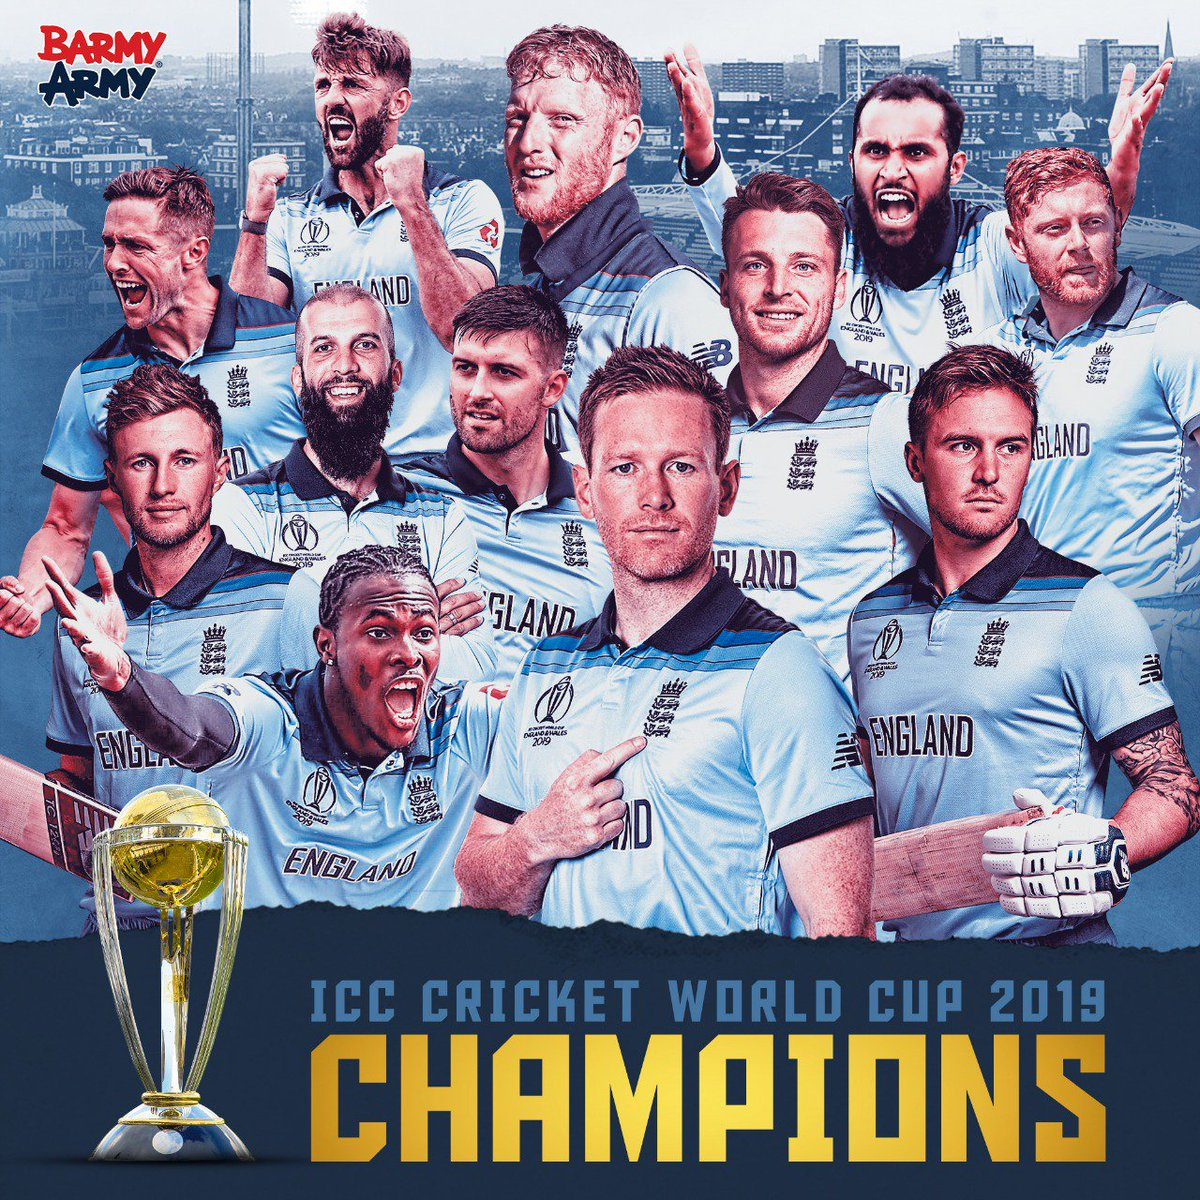 WE ARE WORLD CHAMPIONS!!! 🏴🏴🏴🦁🦁🦁🏆🏆🏆#CWC19